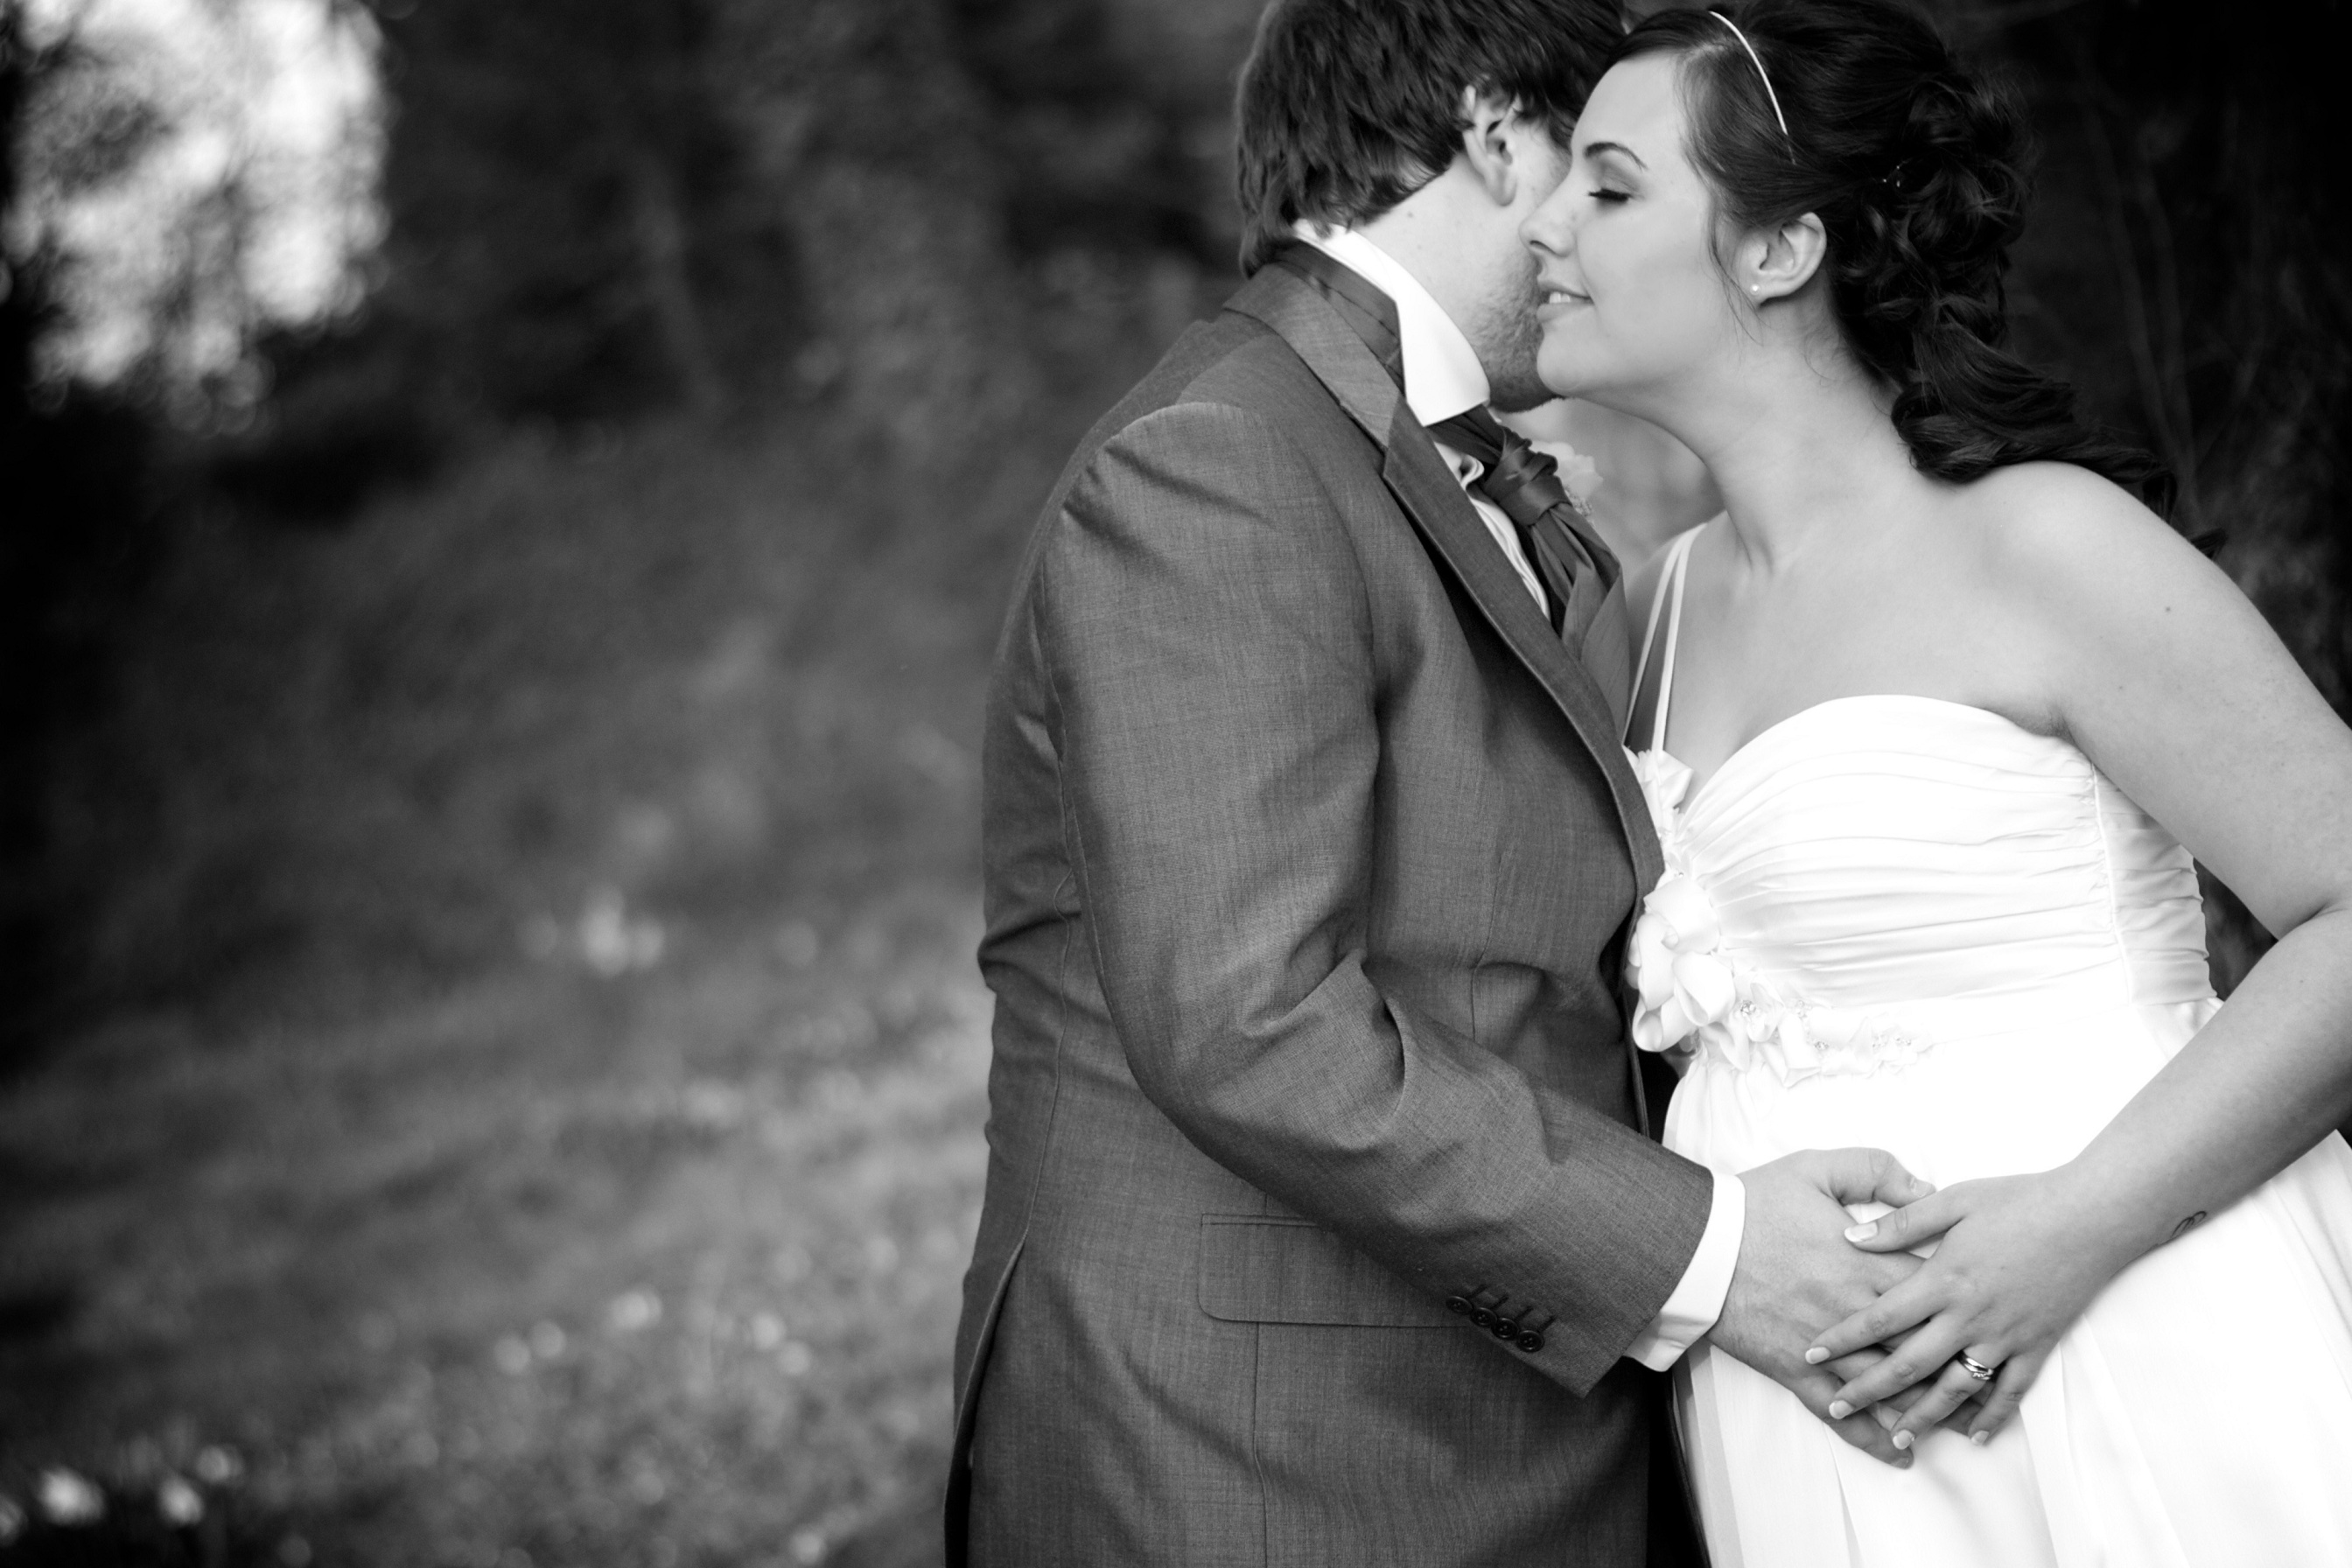 Dalston Hall Wedding Photography - Pregnant Bride embraces Groom